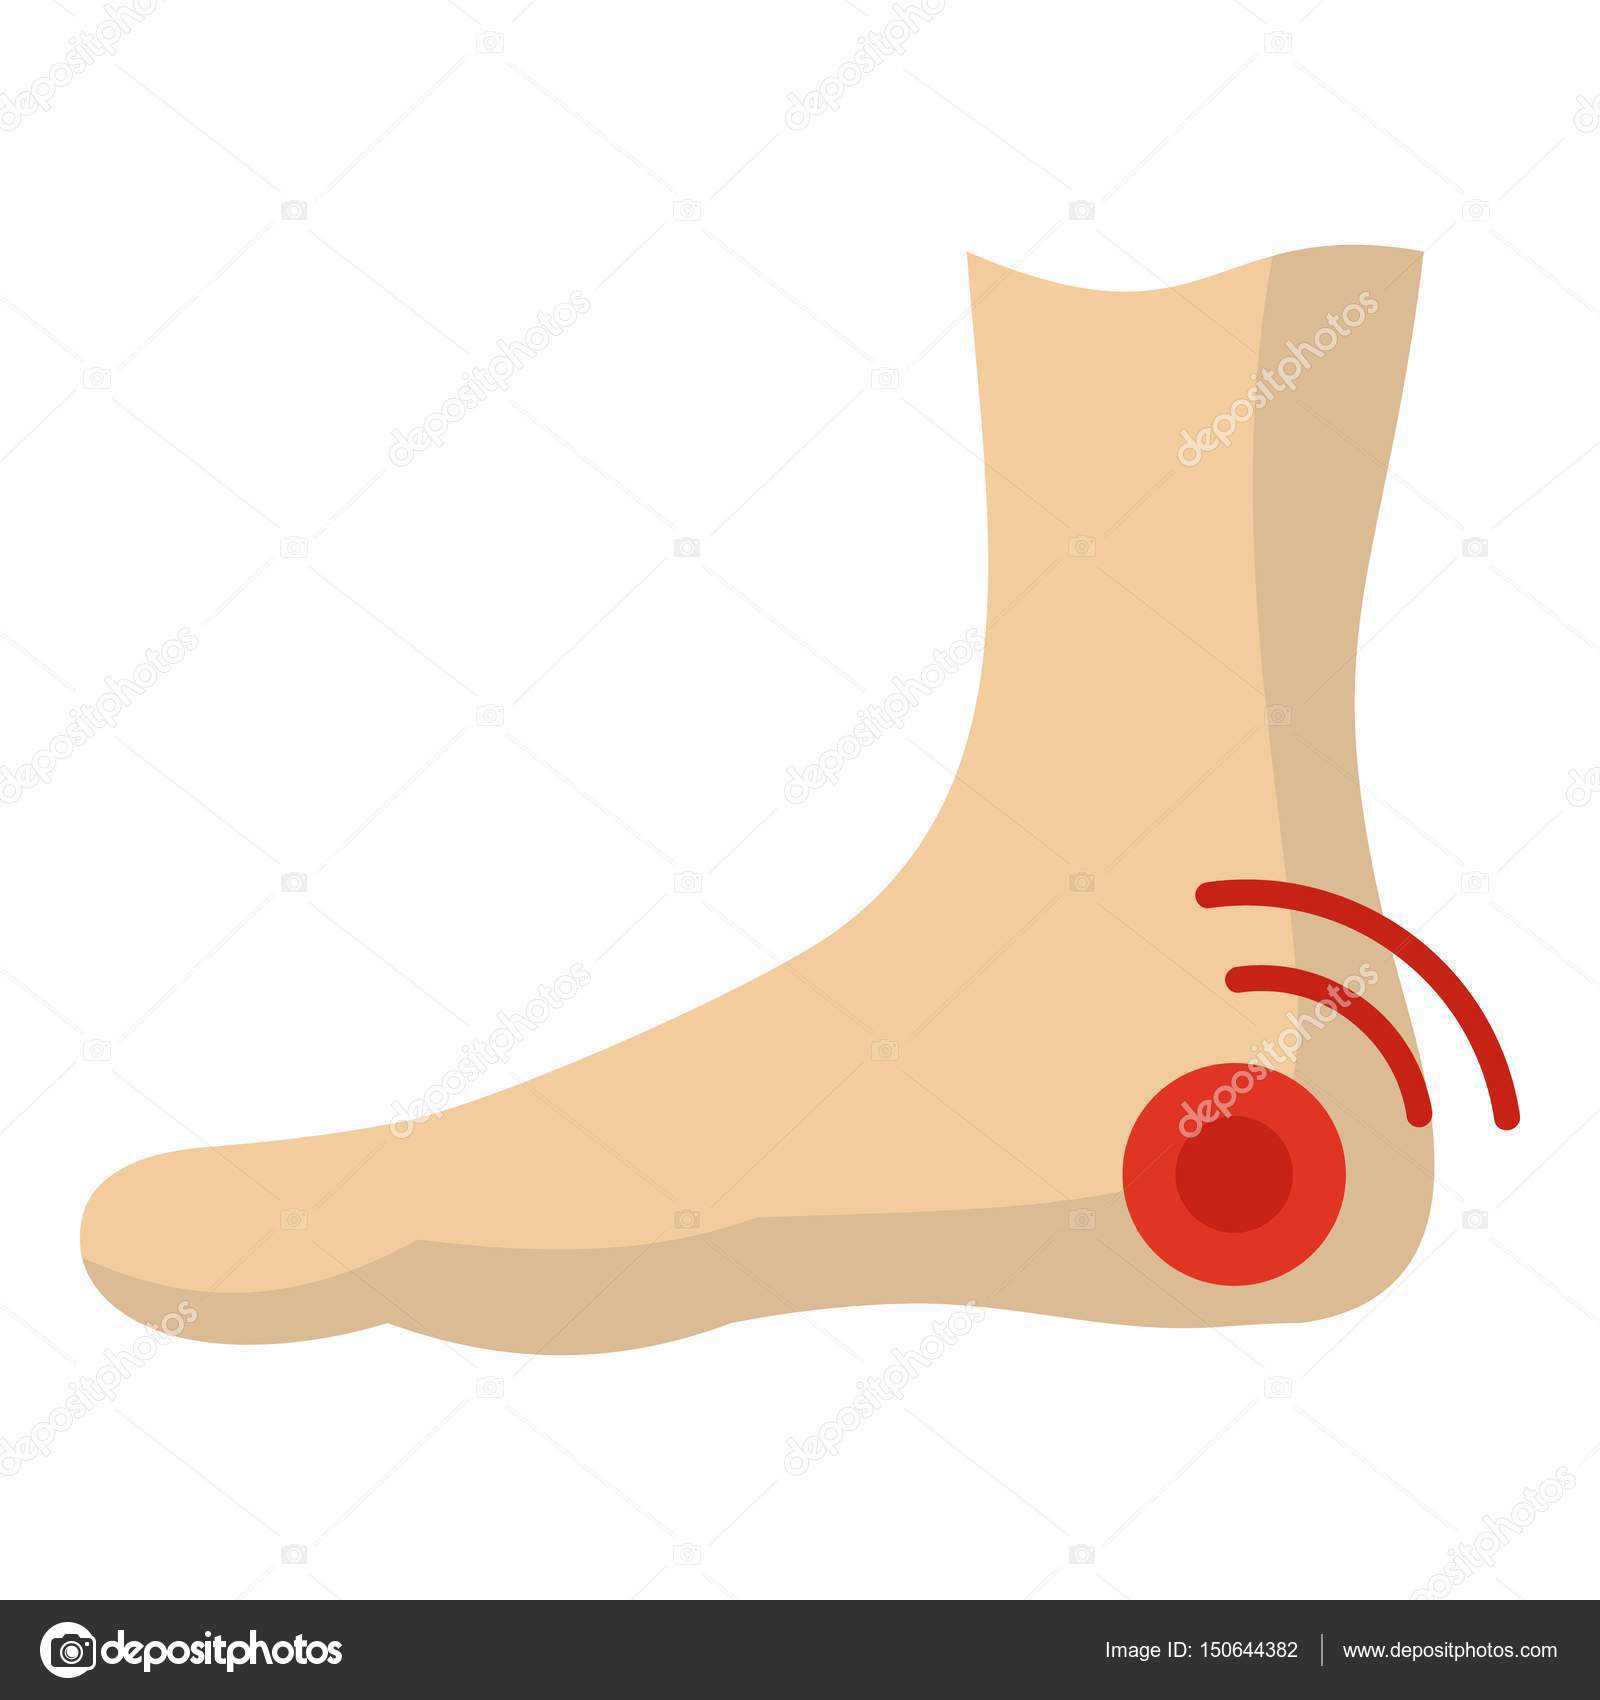 7fe12f30544 Foot heel icon isolated — Stock Vector © ylivdesign #150644382